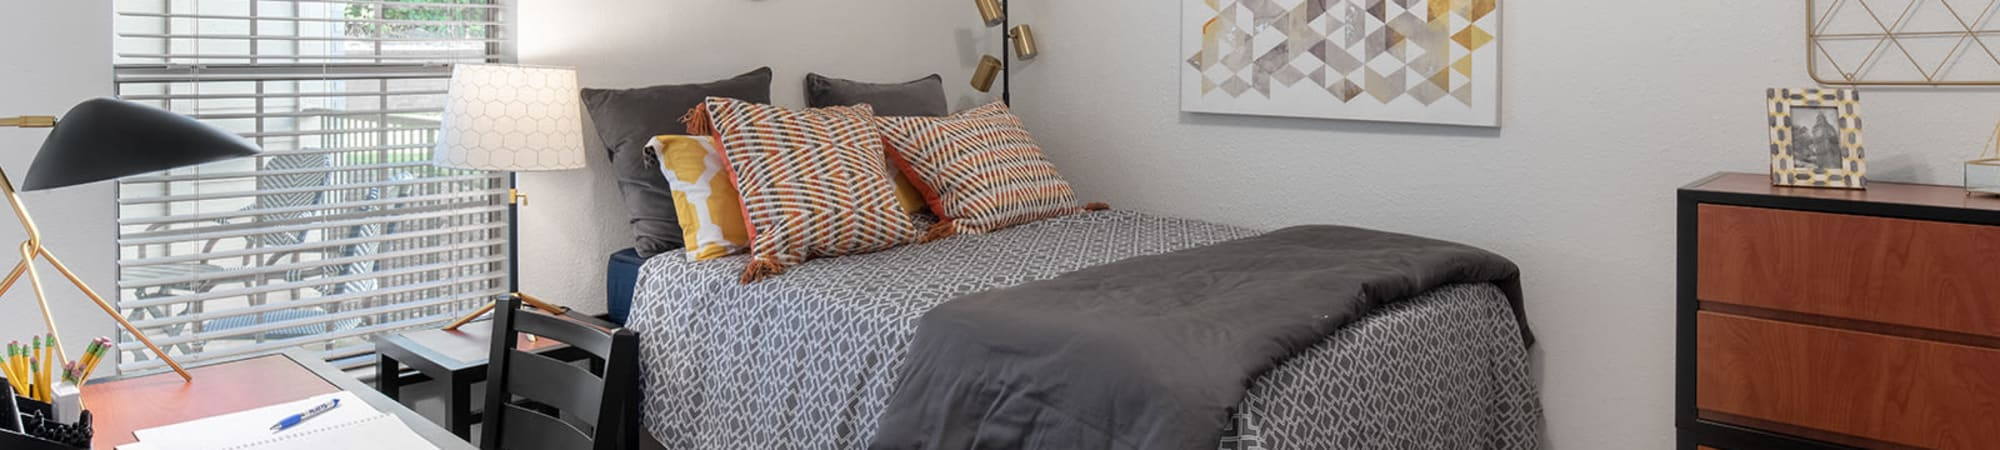 One Bedroom highlights from Flatts at South Campus in Oxford, Mississippi